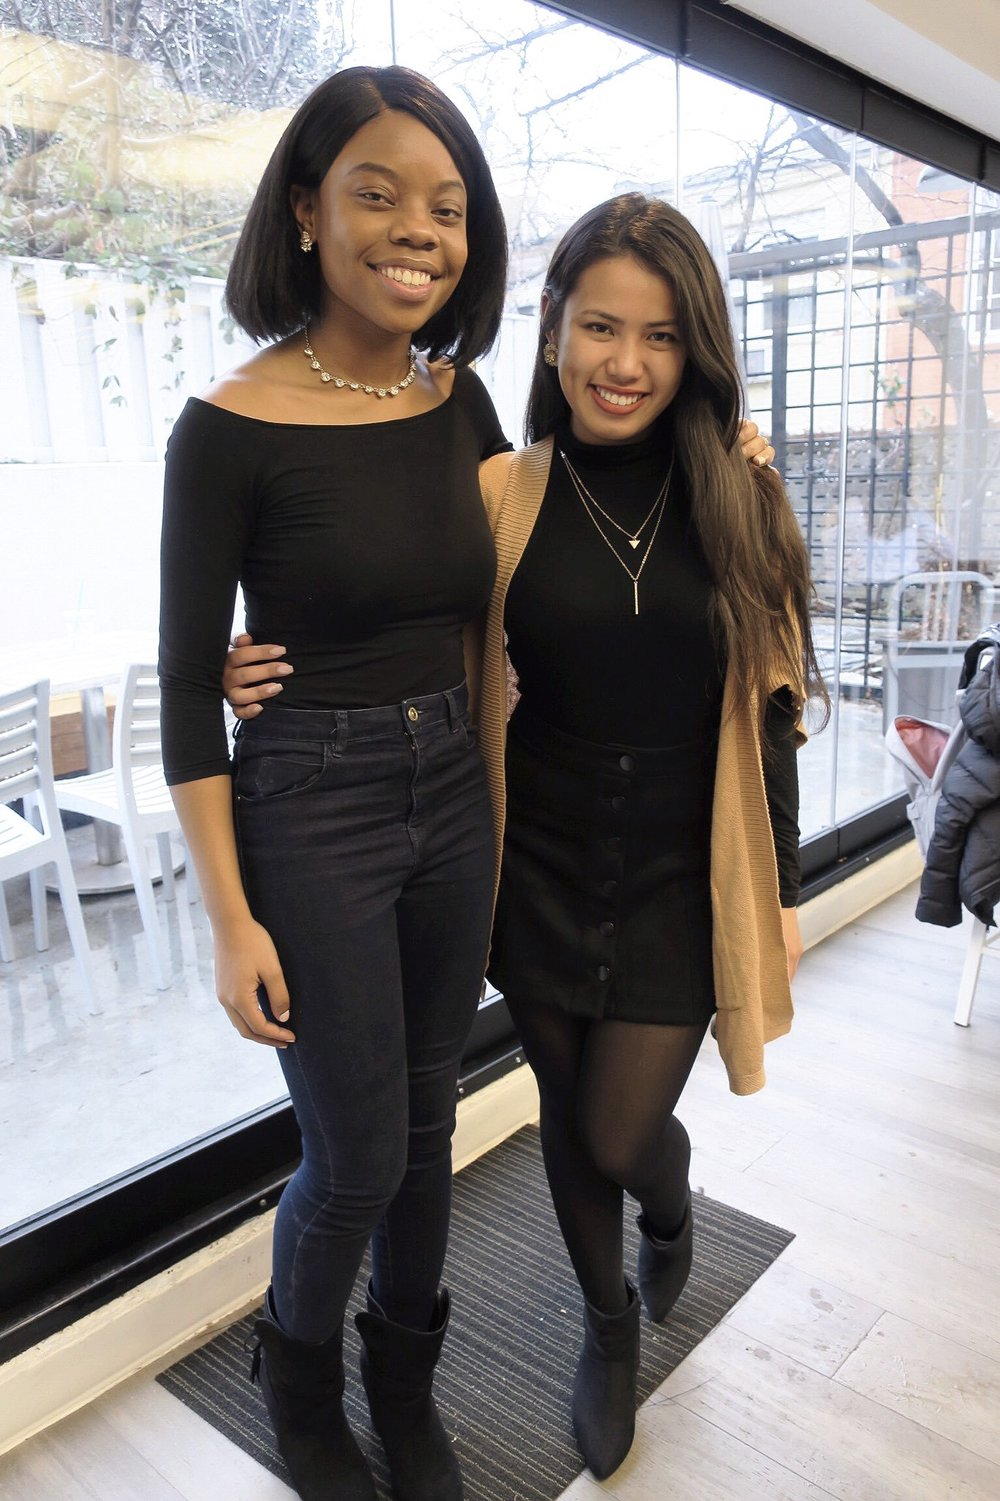 Simone and I traveled through so many places in Europe together and she's also one of my favorite people to travel with because  i  t's better when you have   someone who loves to shop and take their time getting ready as much as you do. (Georgetown, Washington D.C.)